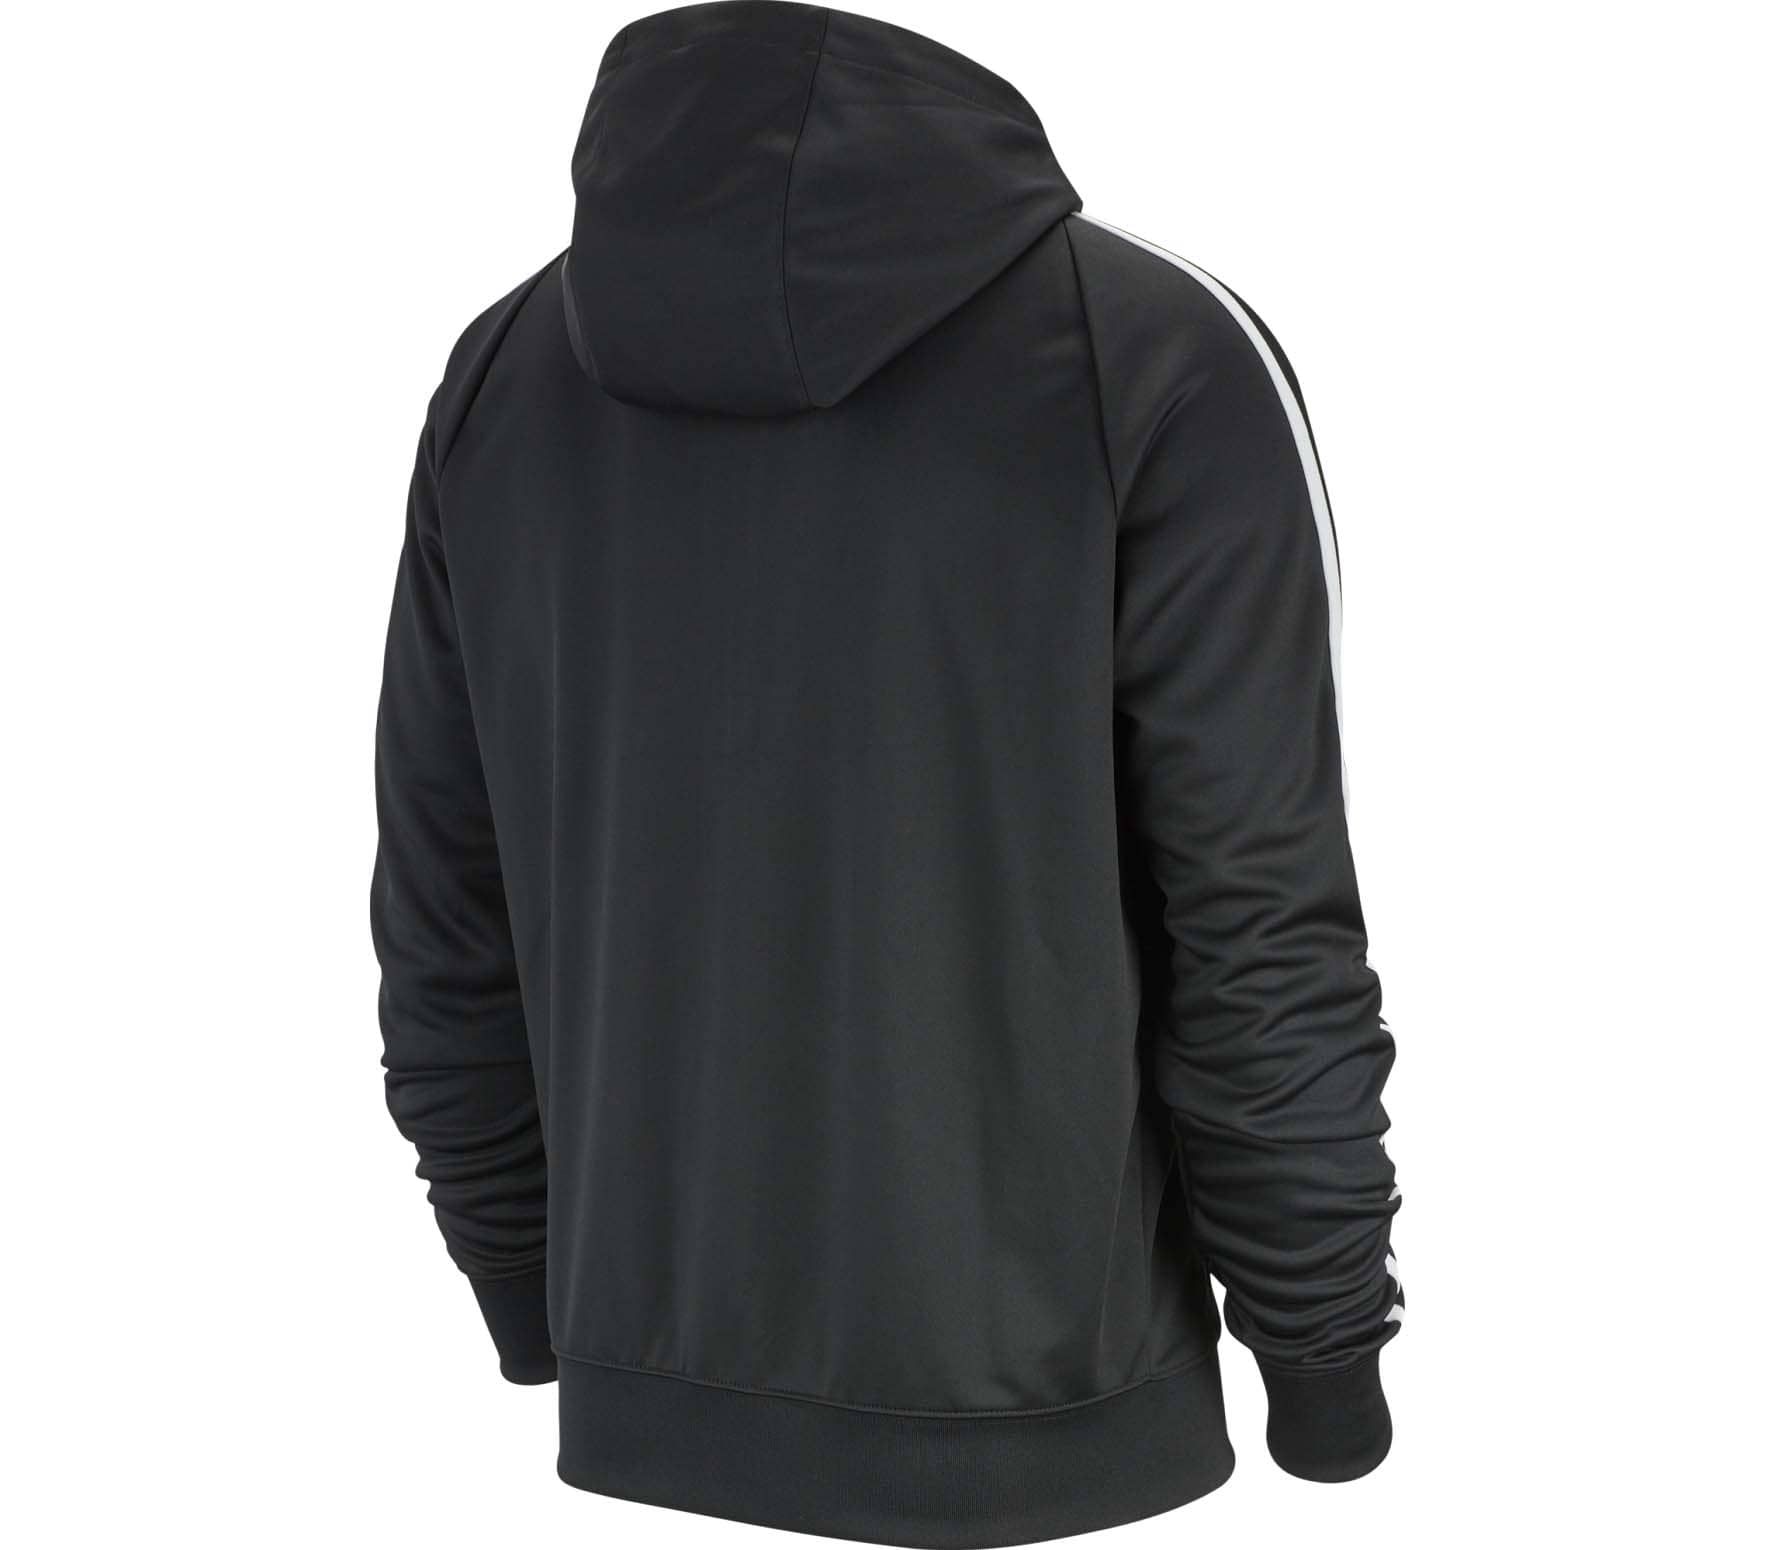 Nike Sportswear Tribute Full Zip Hommes Sweat à capuche (noir)